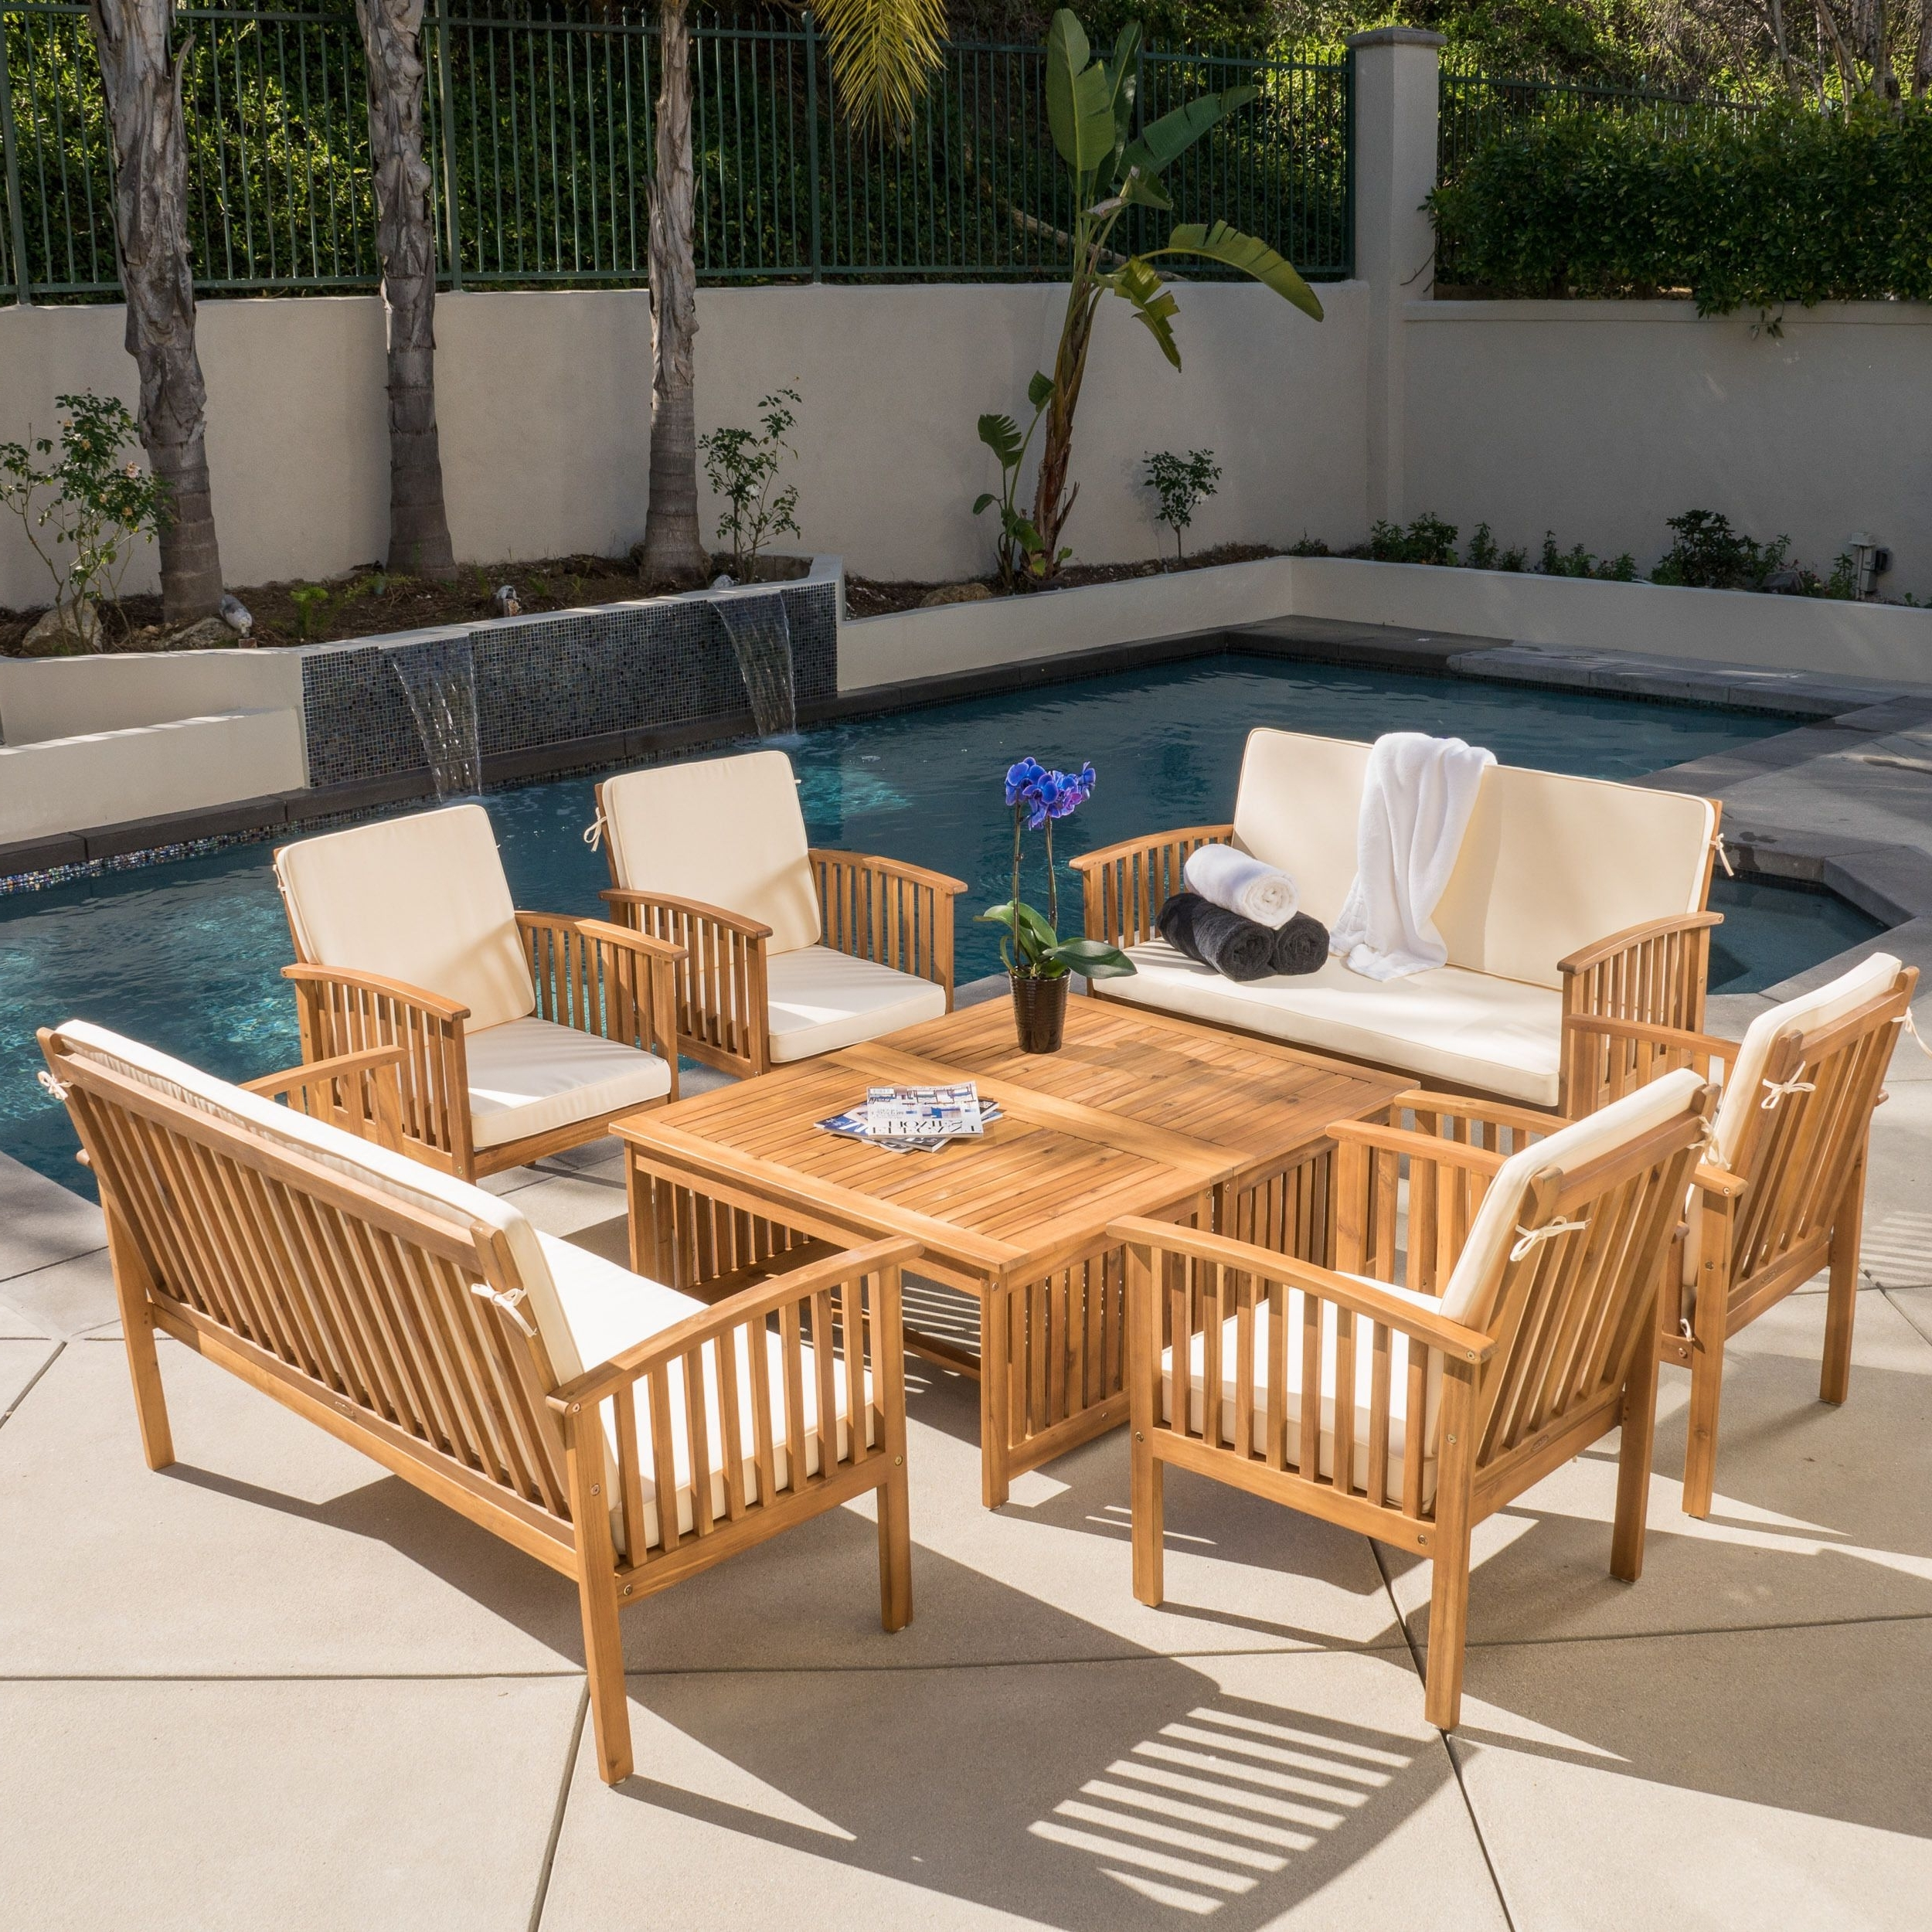 Pier One Patio Cushions Inspirational Outdoor Christopher Knight With Most Up To Date Pier One Patio Conversation Sets (View 12 of 15)